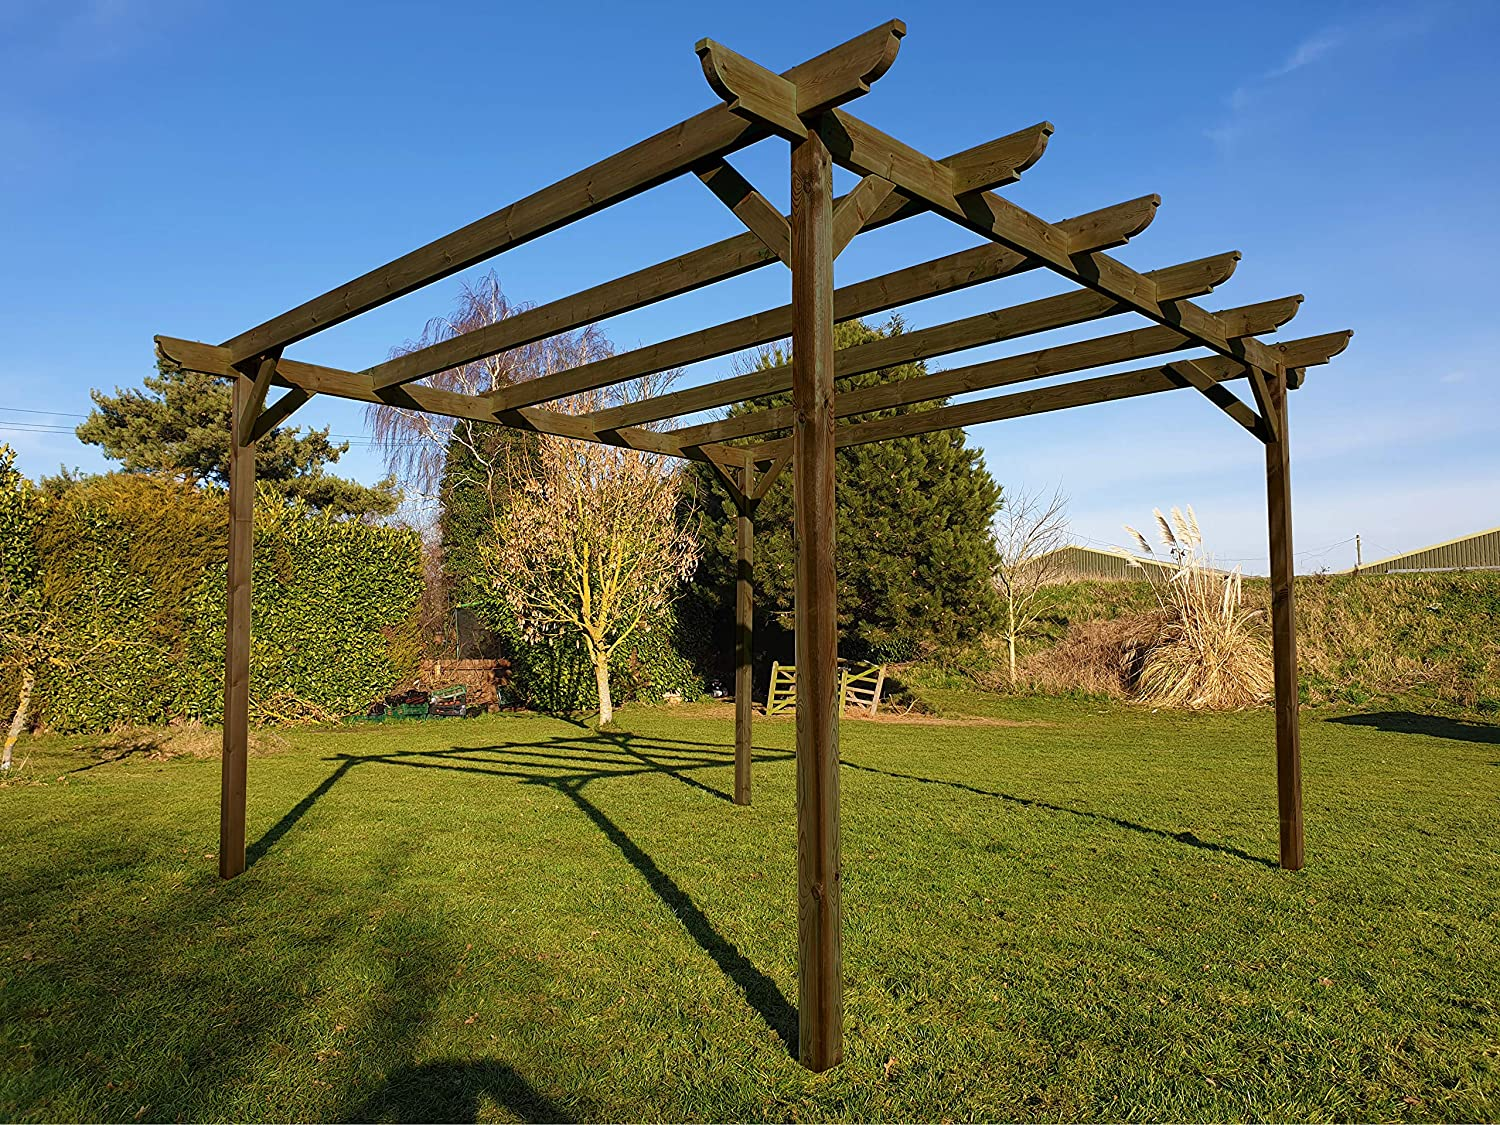 GMS TIMBER LTD - Pérgola de Madera para jardín, Color Verde Claro o marrón rústico: Amazon.es: Jardín